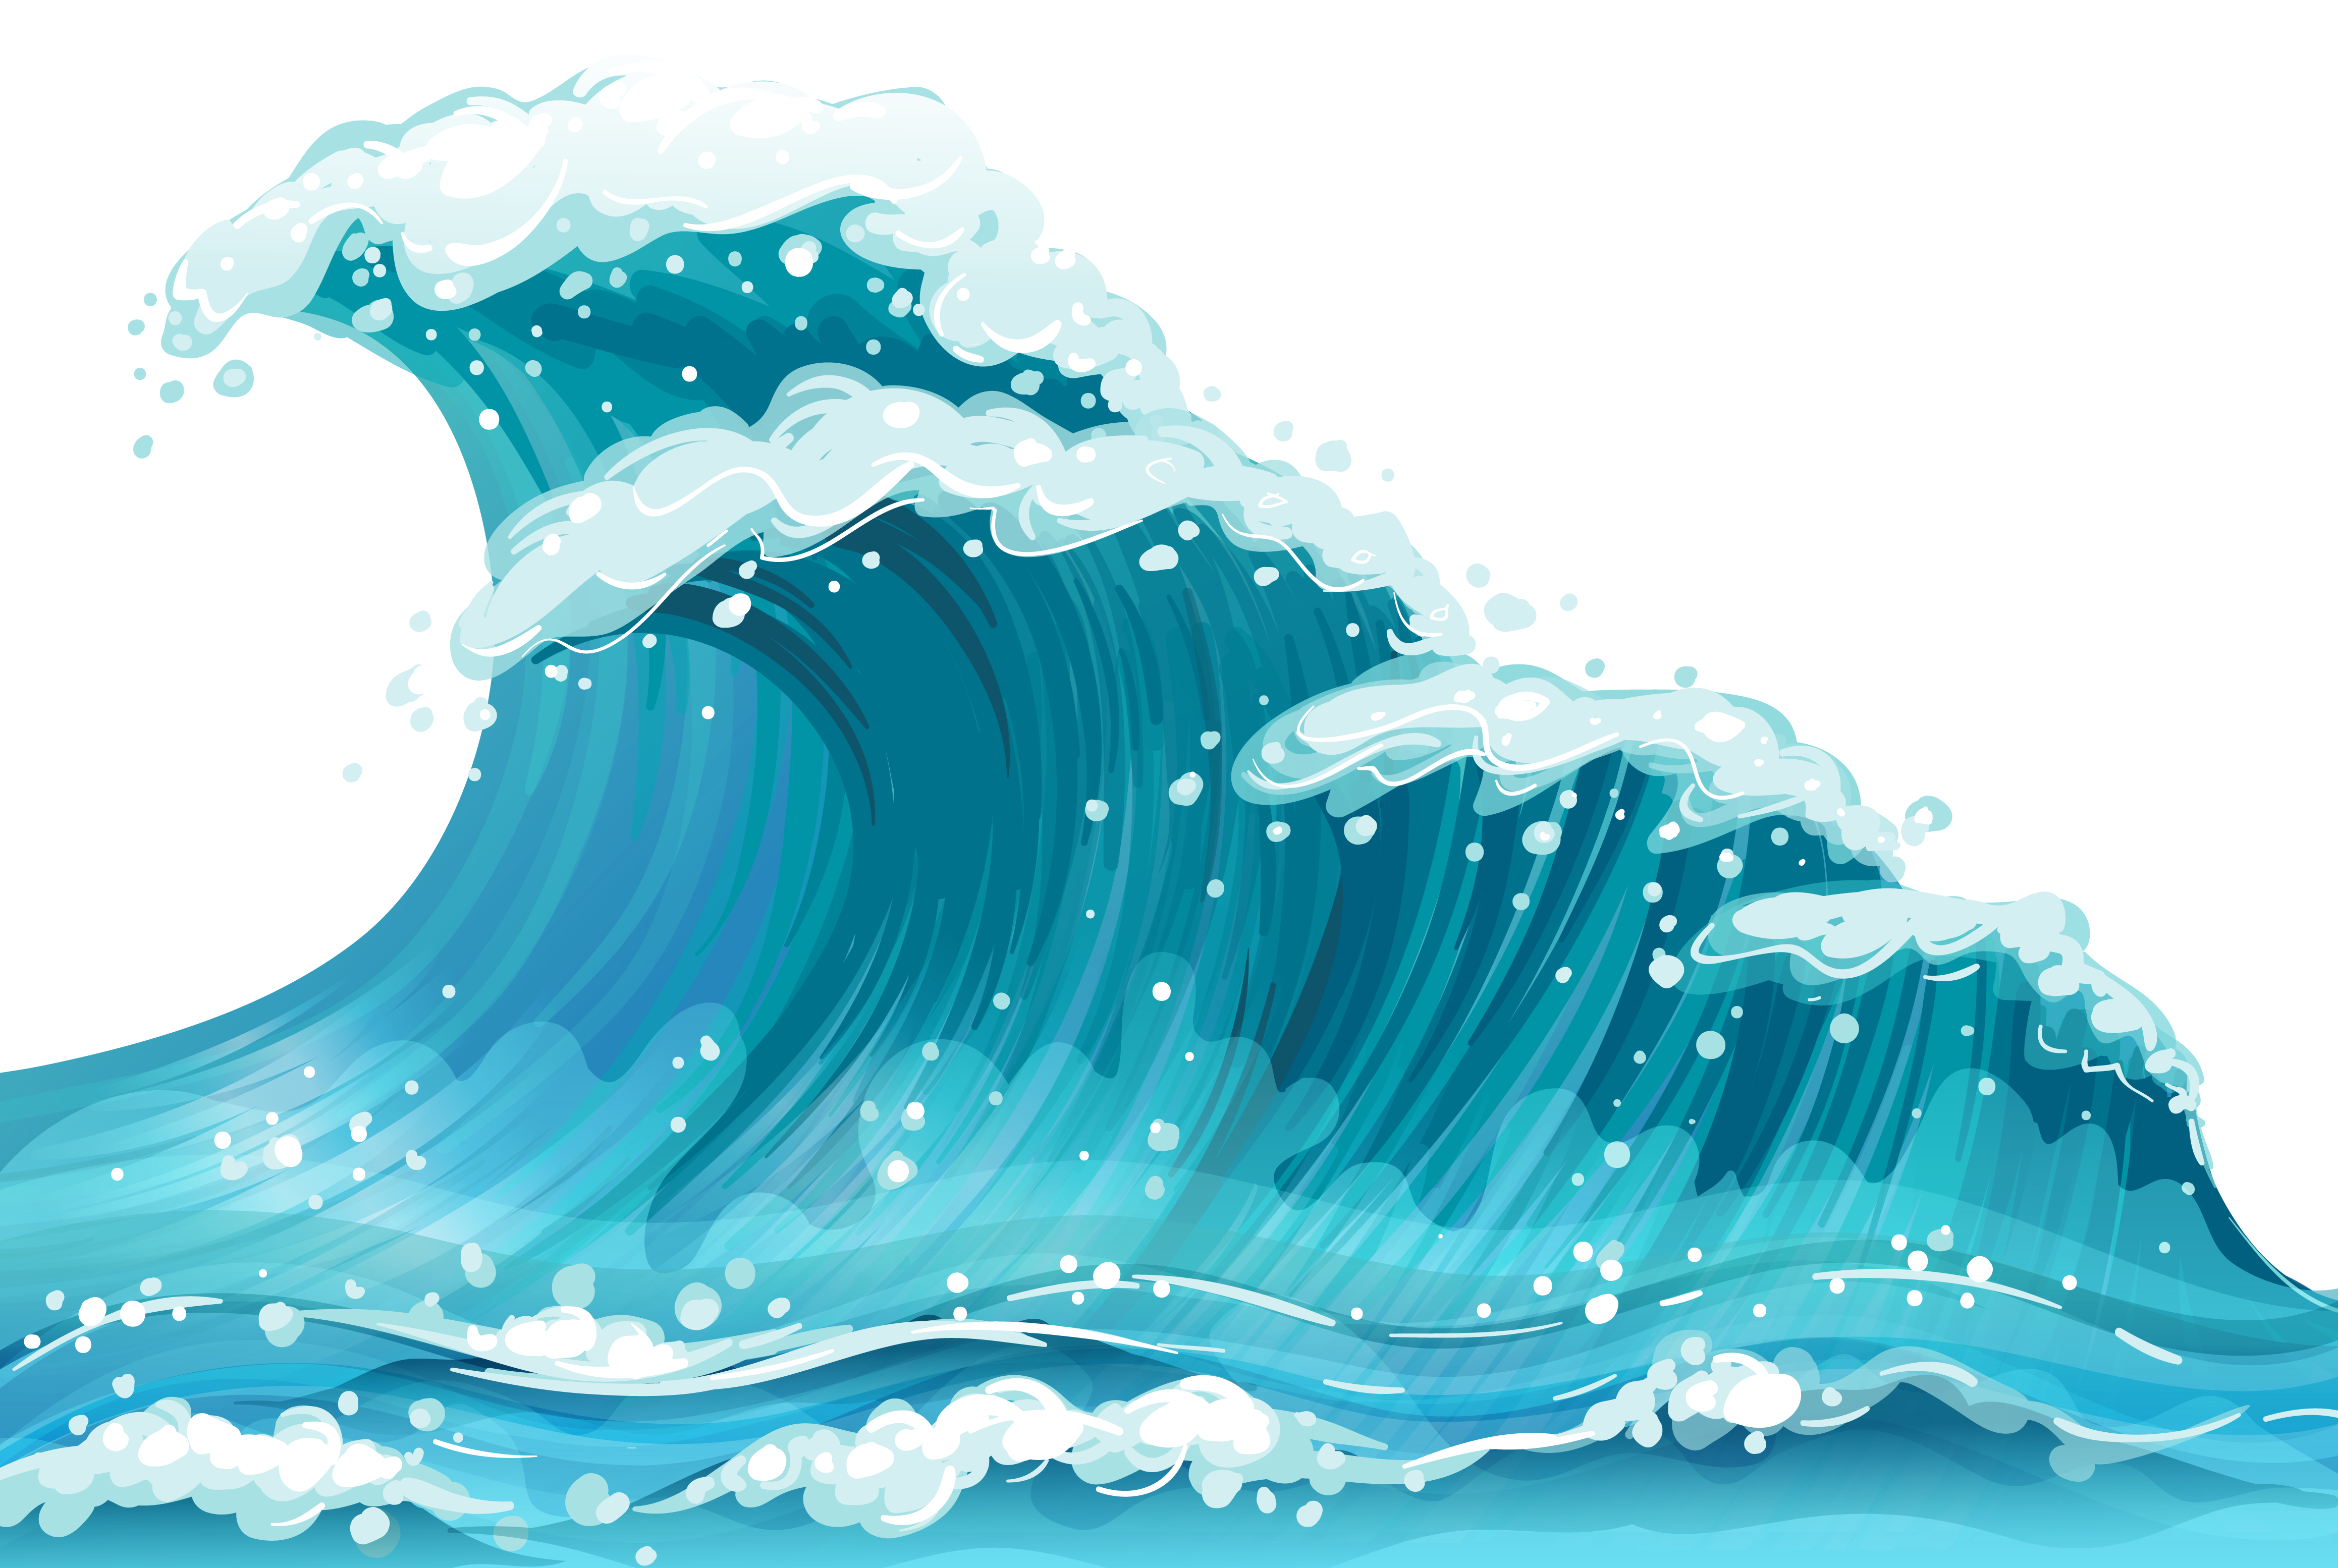 Waves clipart wave energy. Sources on emaze dededeeafceecebaebpng